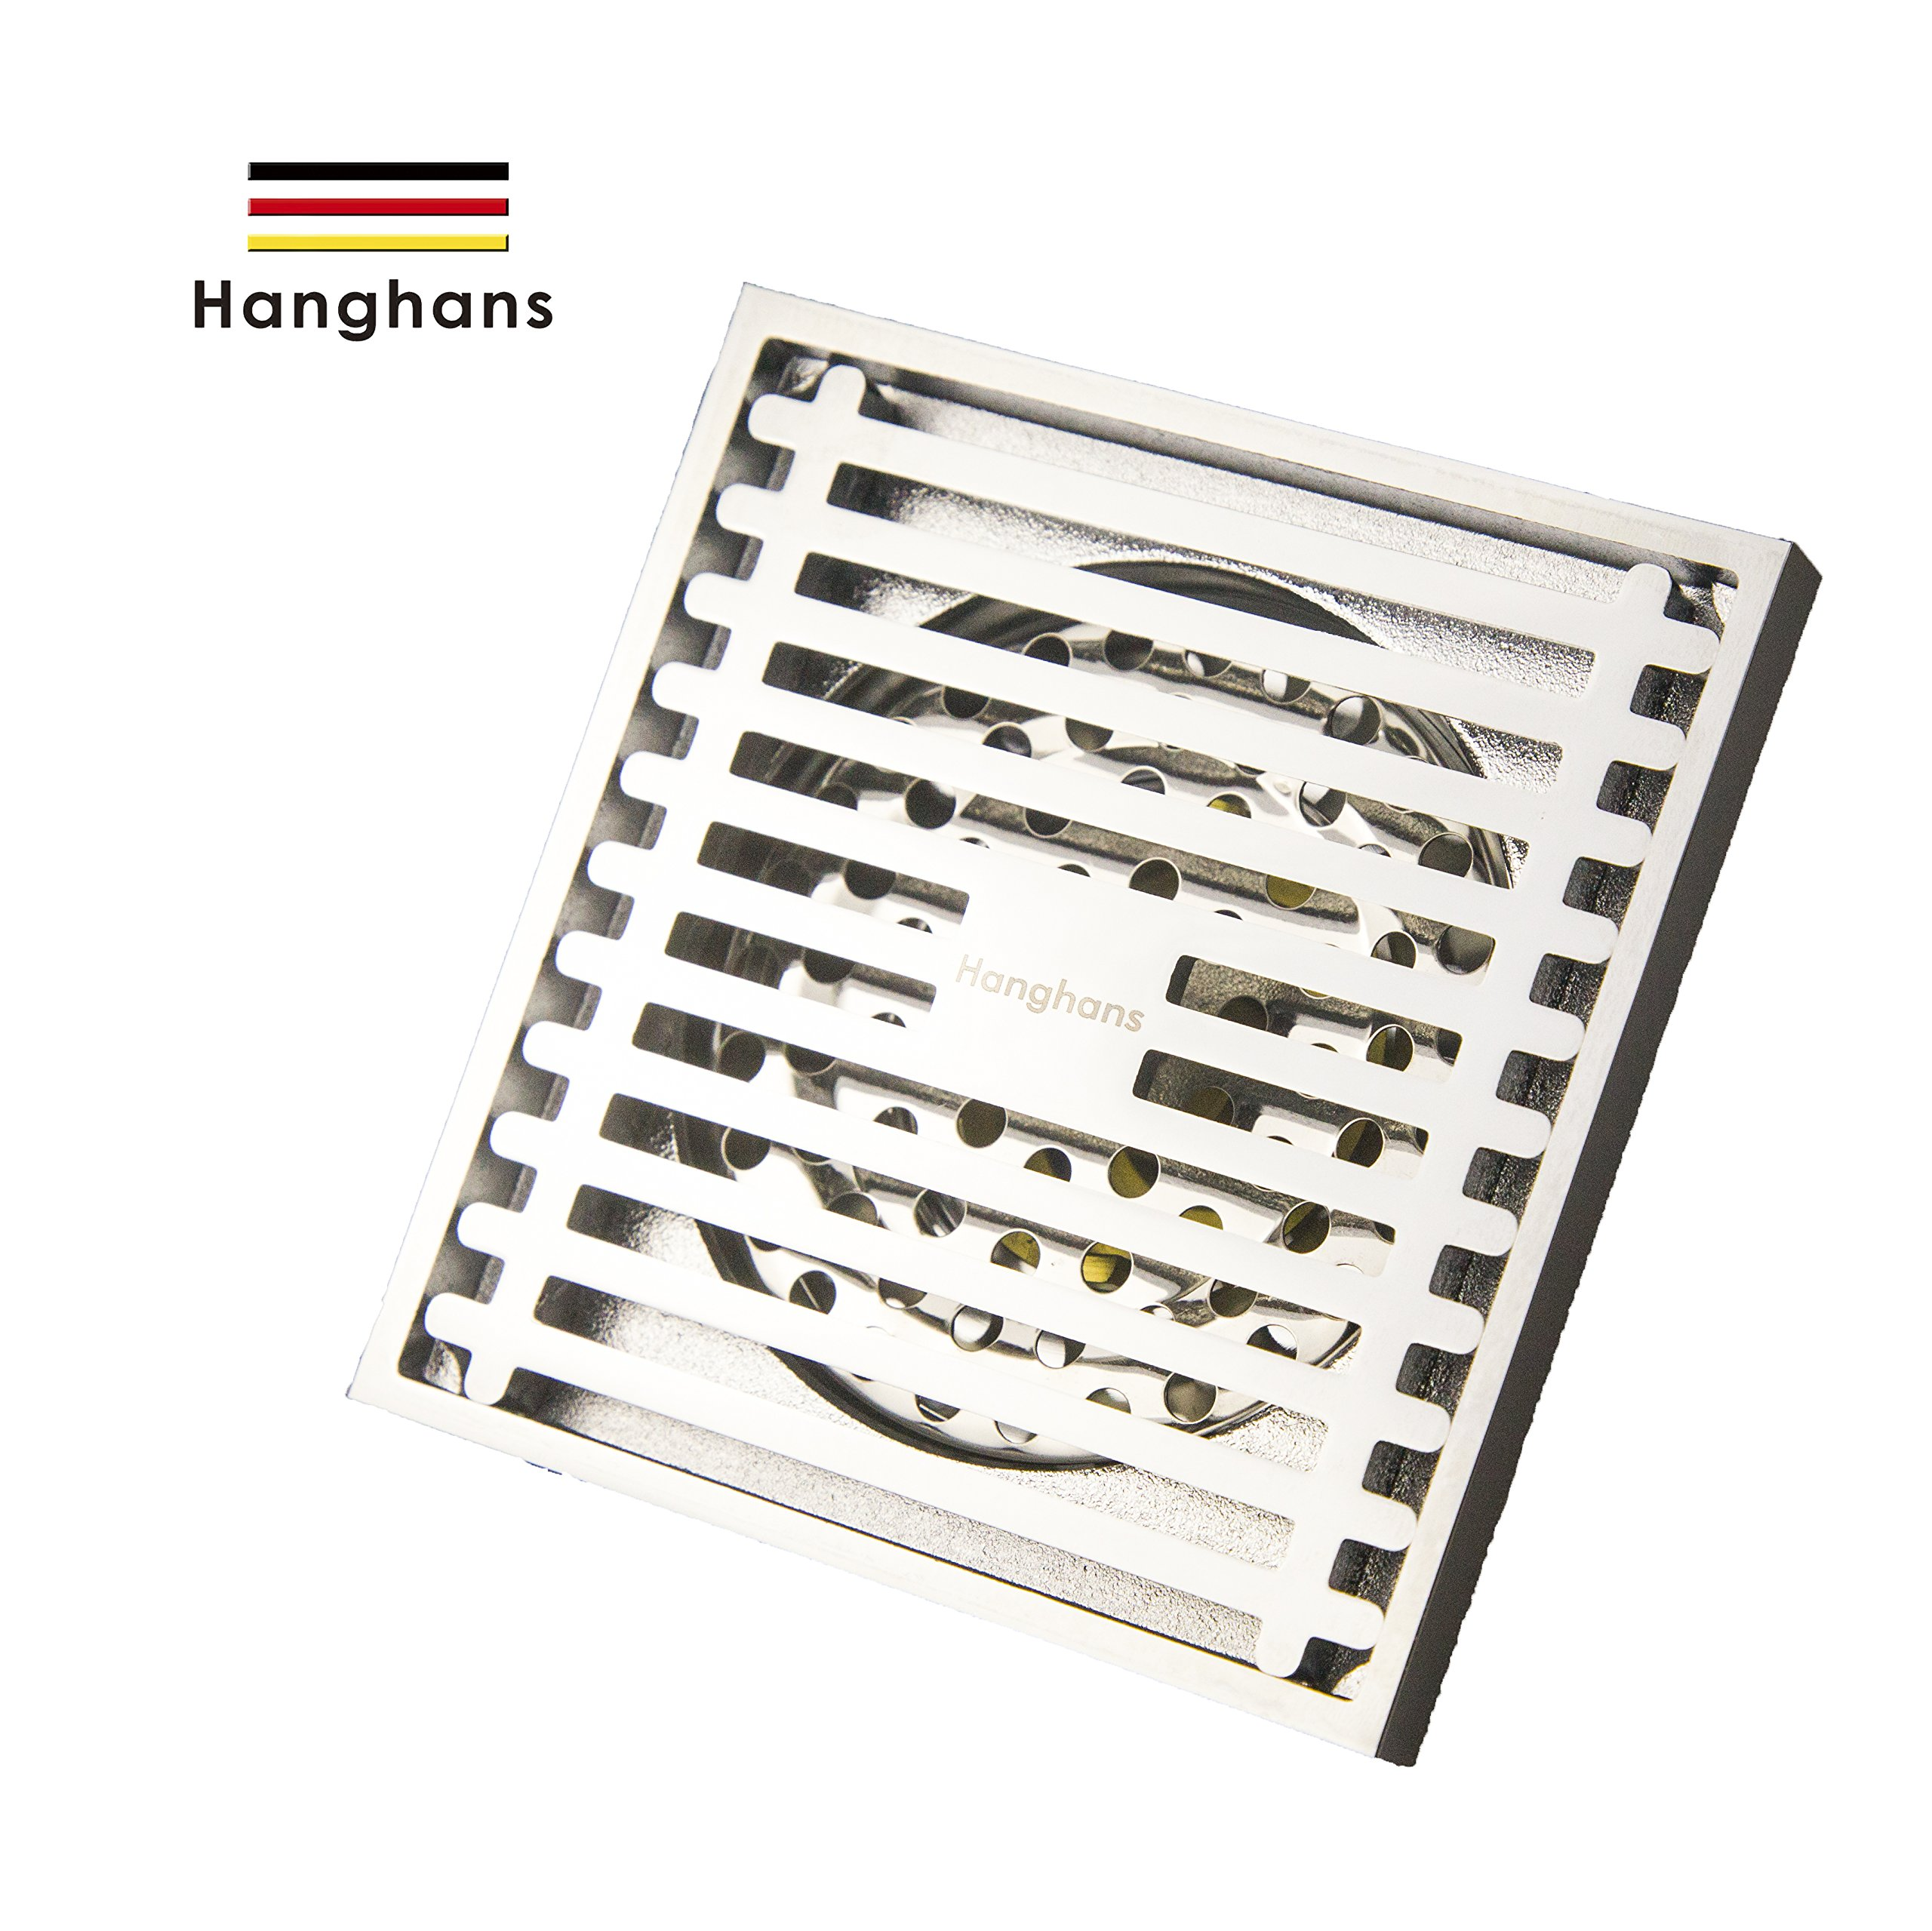 Ducky Square Shower Floor Drain,Bathroom Tile Insert Floor Drainer with Removable Strainer Cover Chrome Finish Anti-clogging for Kitchen, Washroom, Garage and Baseme (chrome)